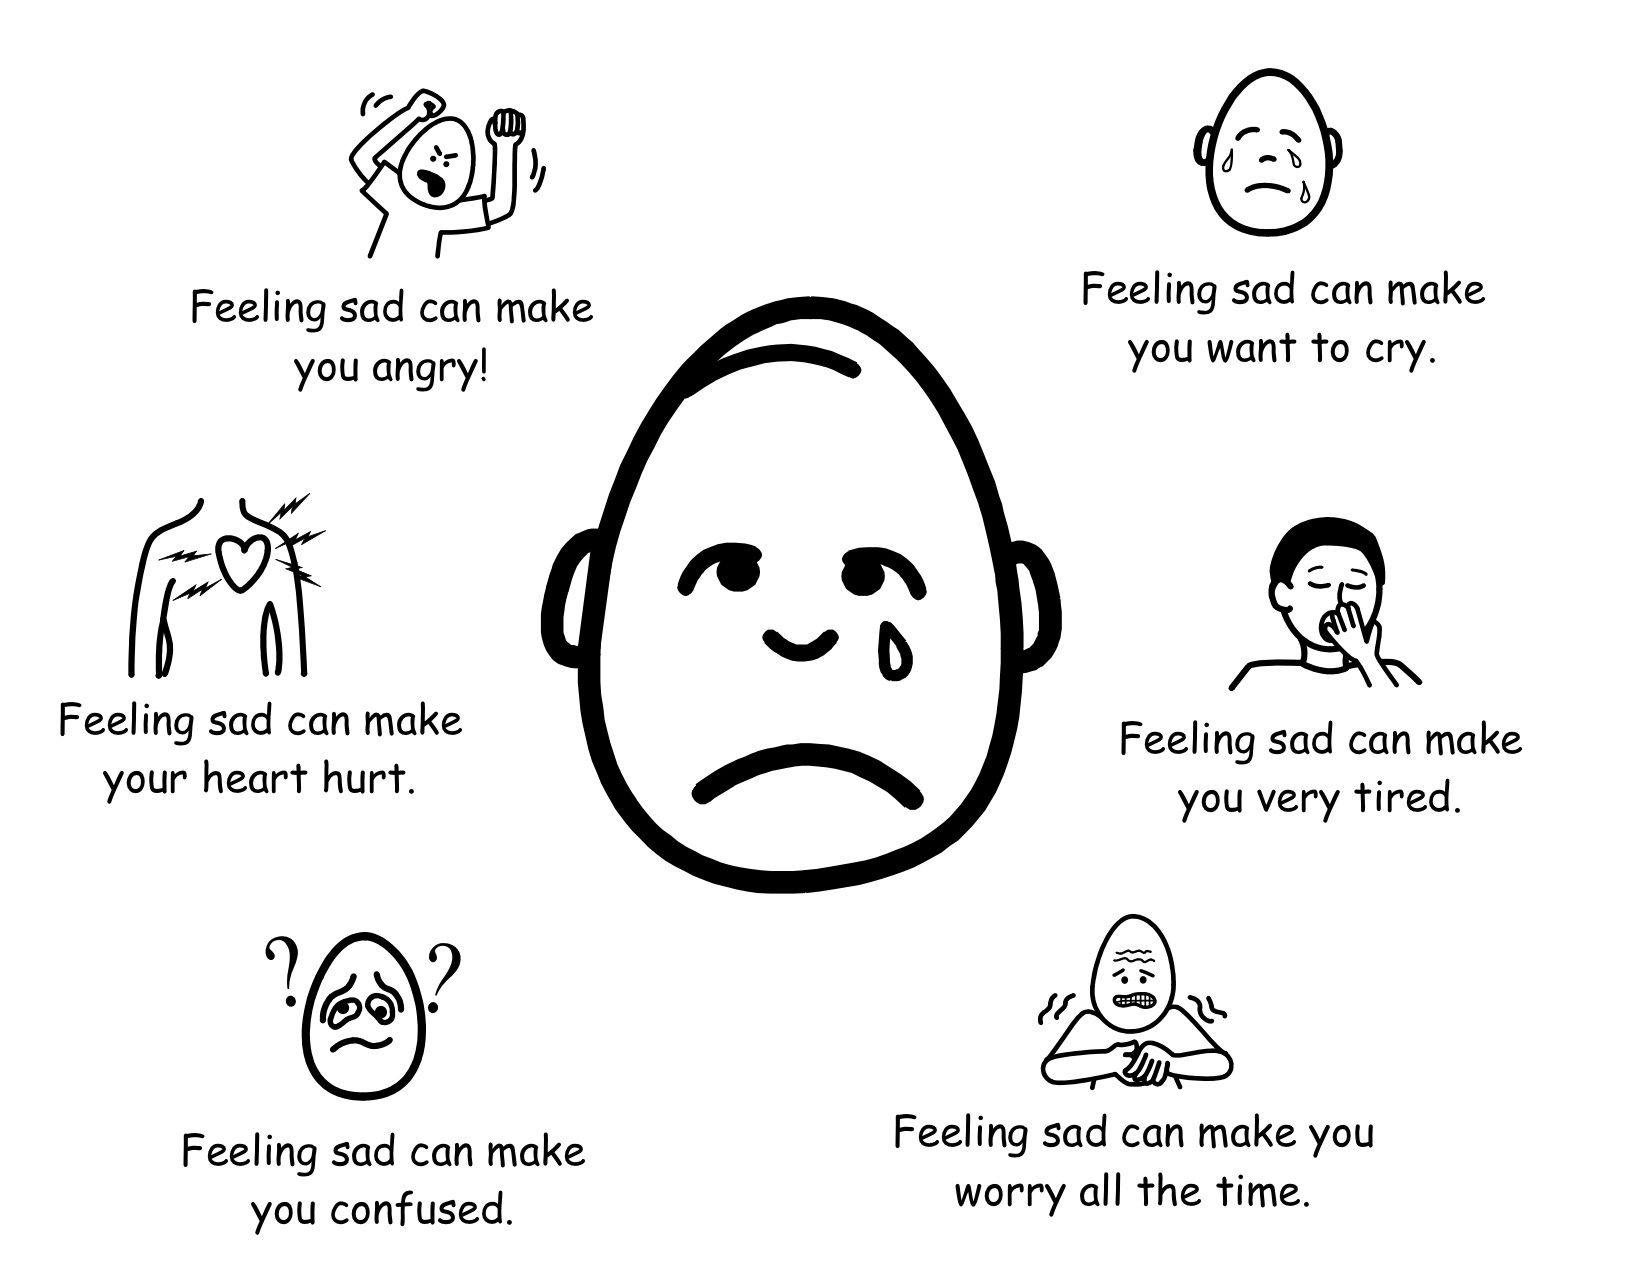 Behavior support story about how being sad can make you